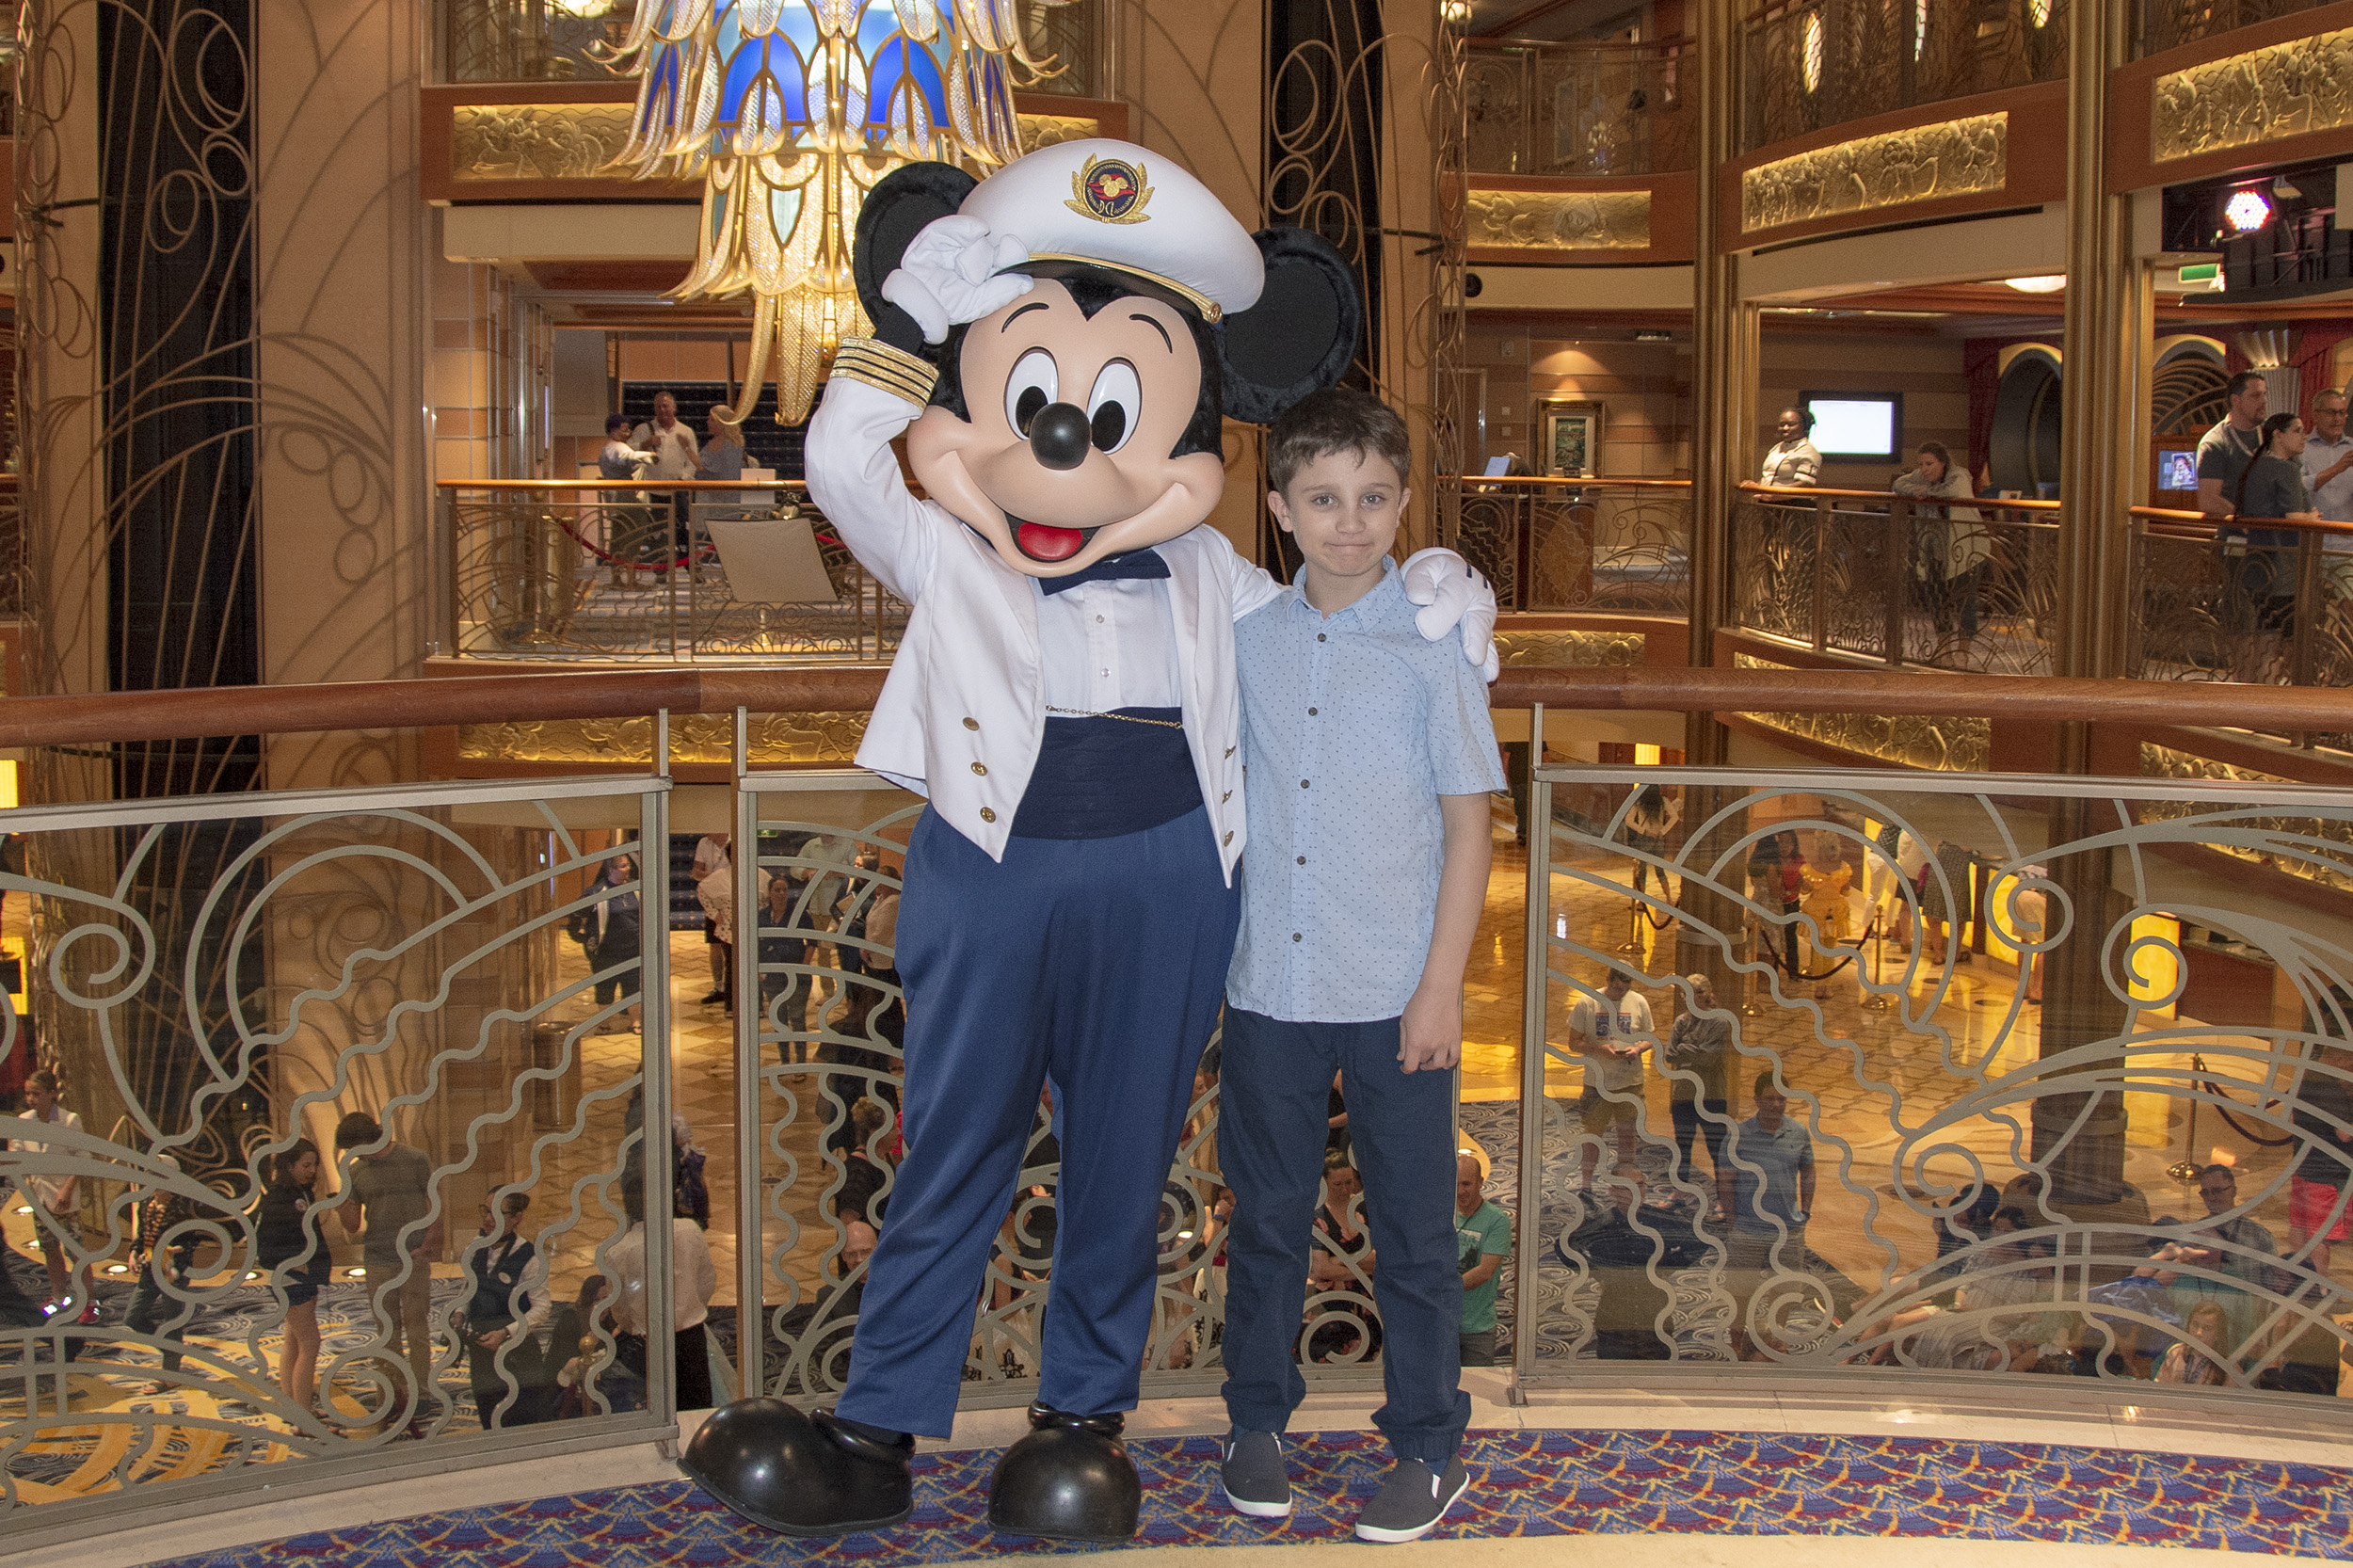 Disney Dream Captain Mickey Mouse